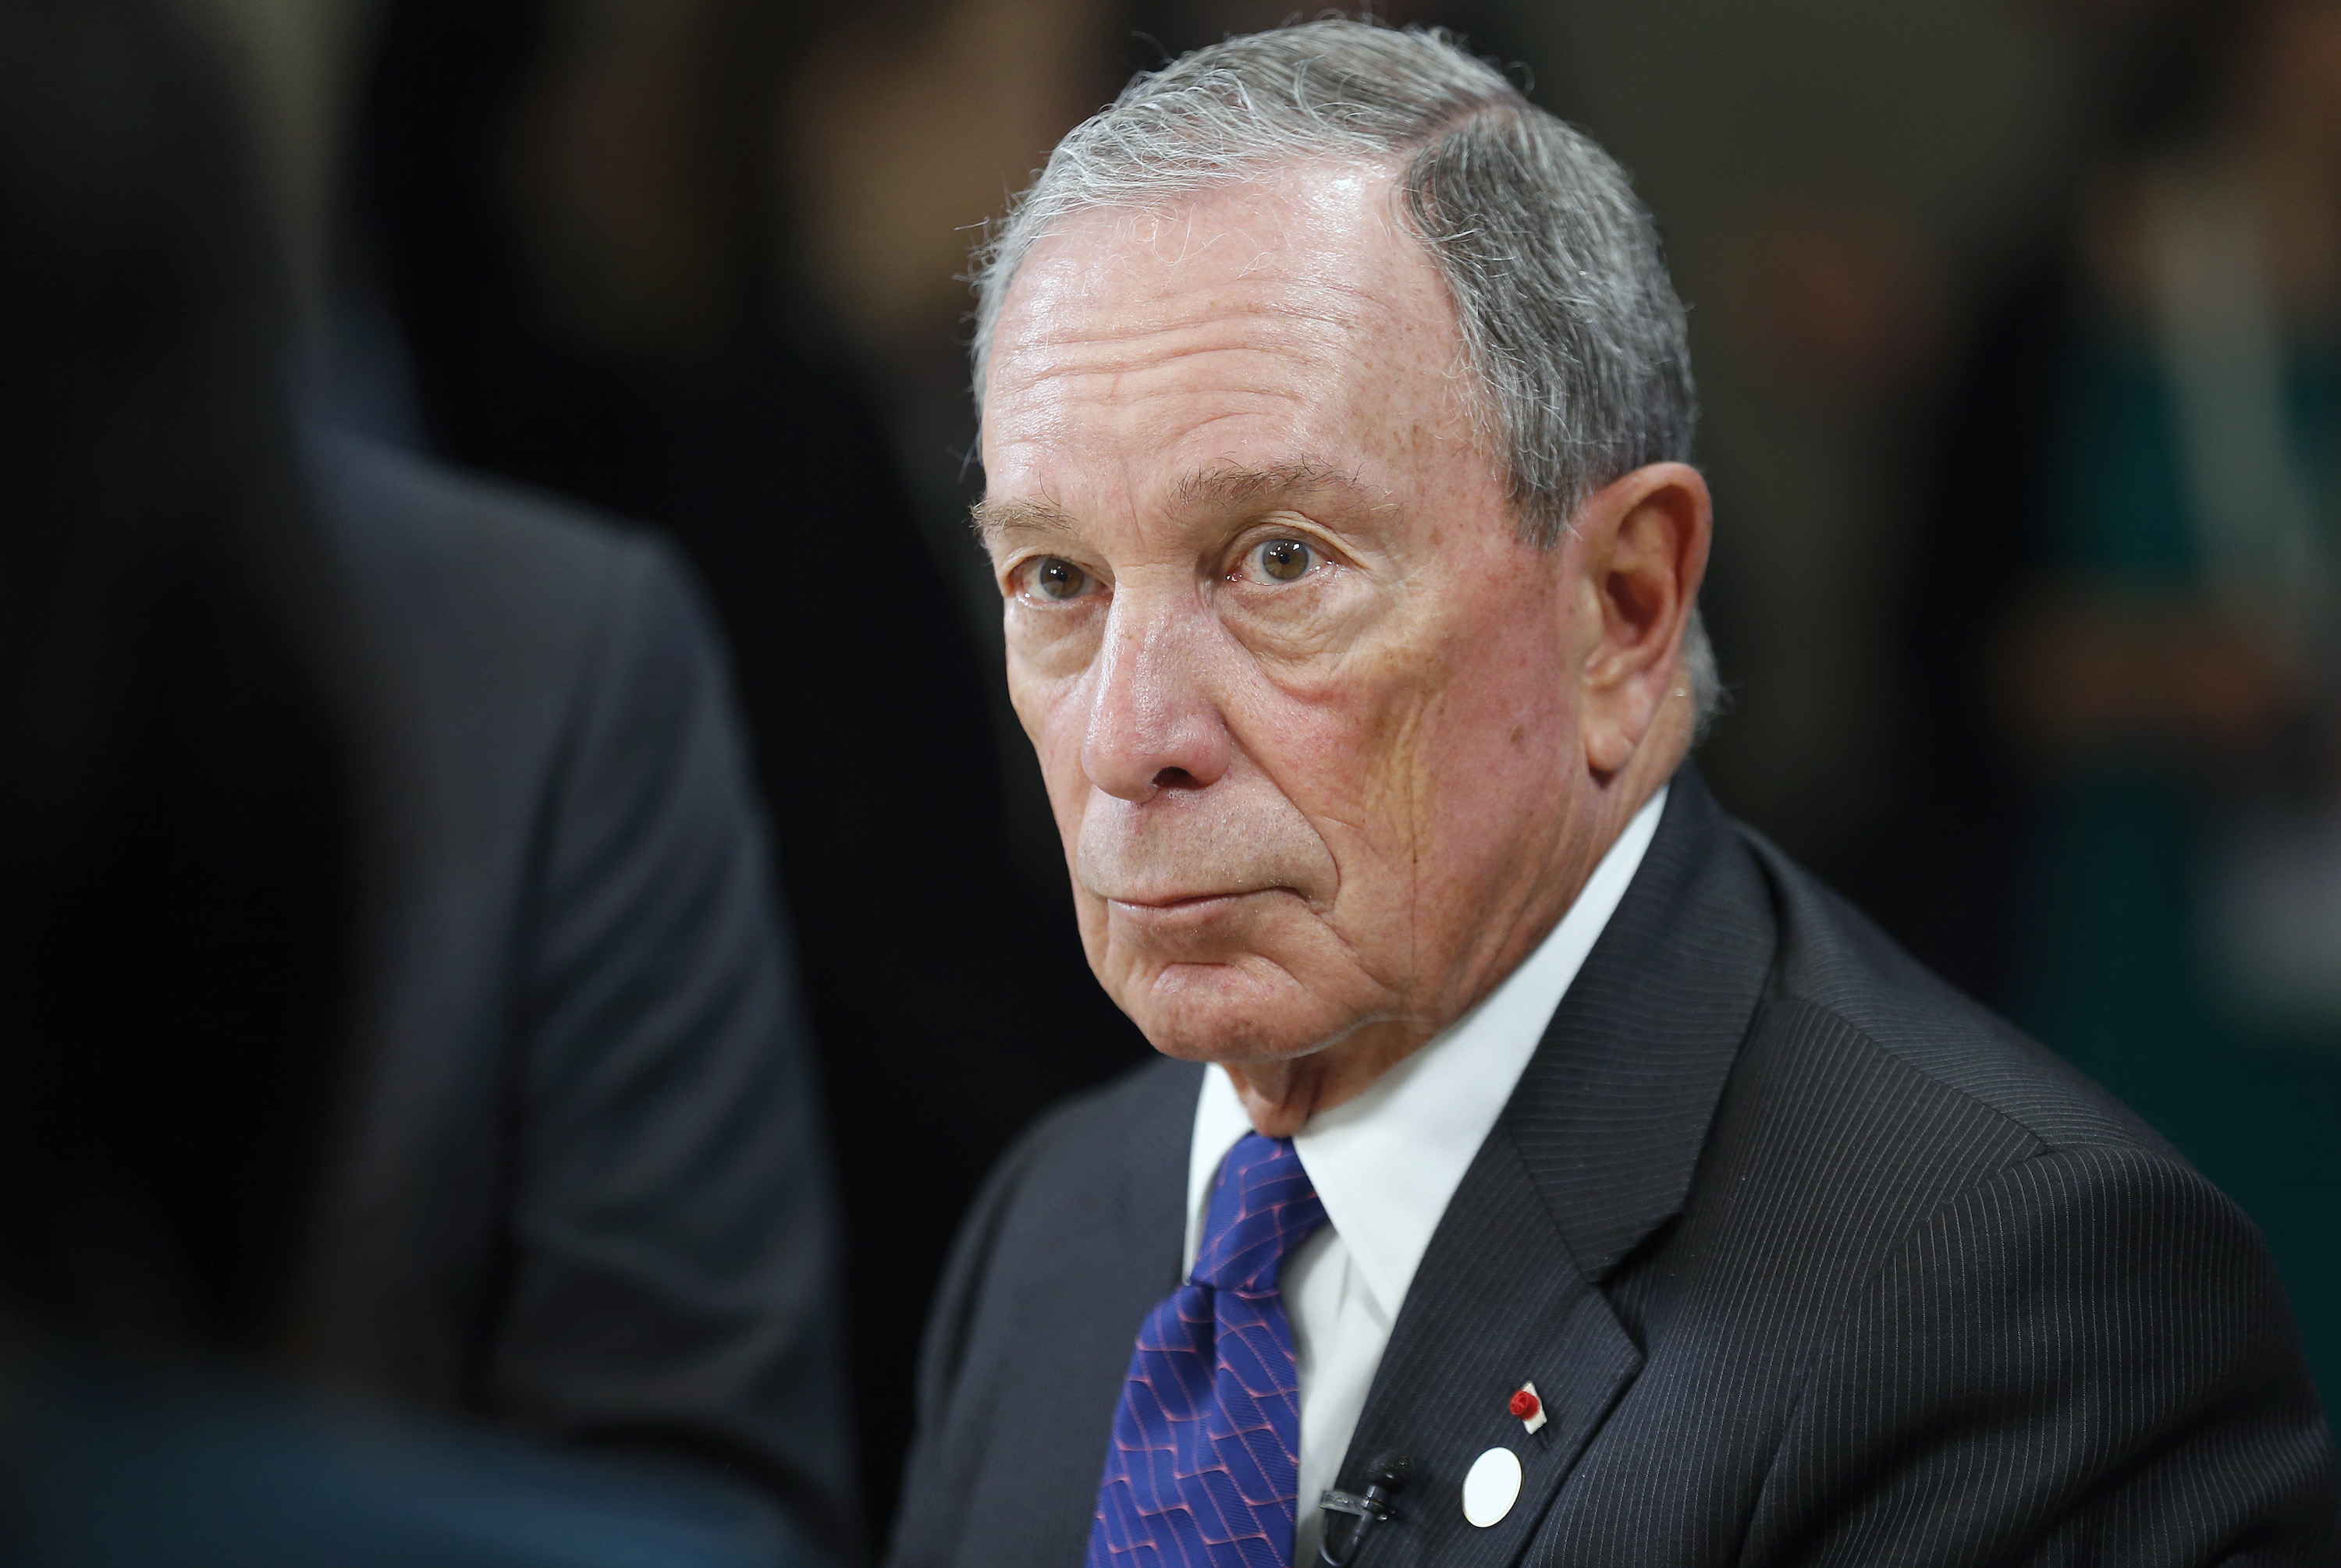 michael bloomberg - photo #28